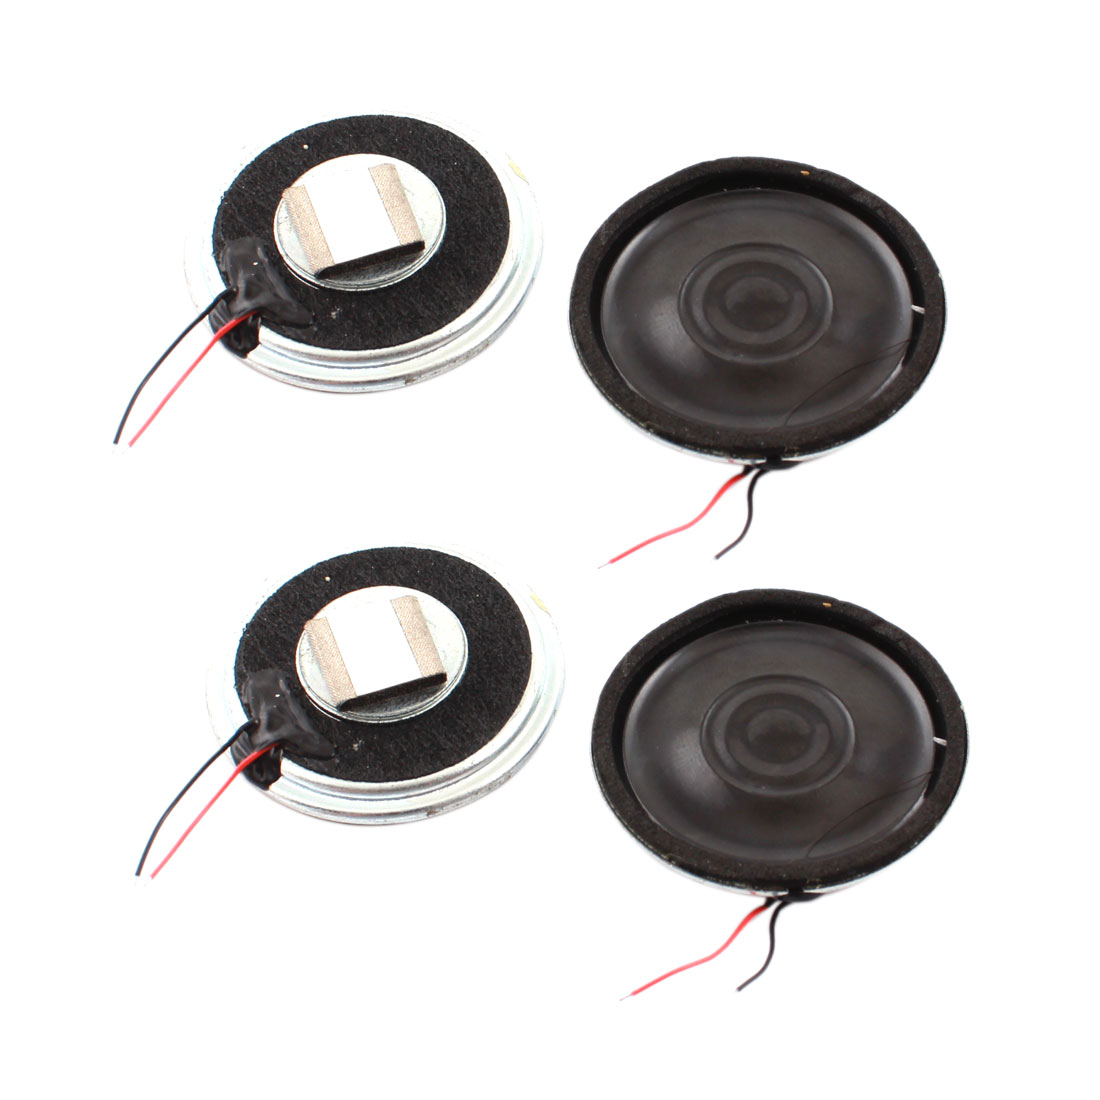 4 Pcs 1W 8 Ohm 3.6cm Dia Plastic Housing Round Cellphone Magnet Speaker Loudspeaker